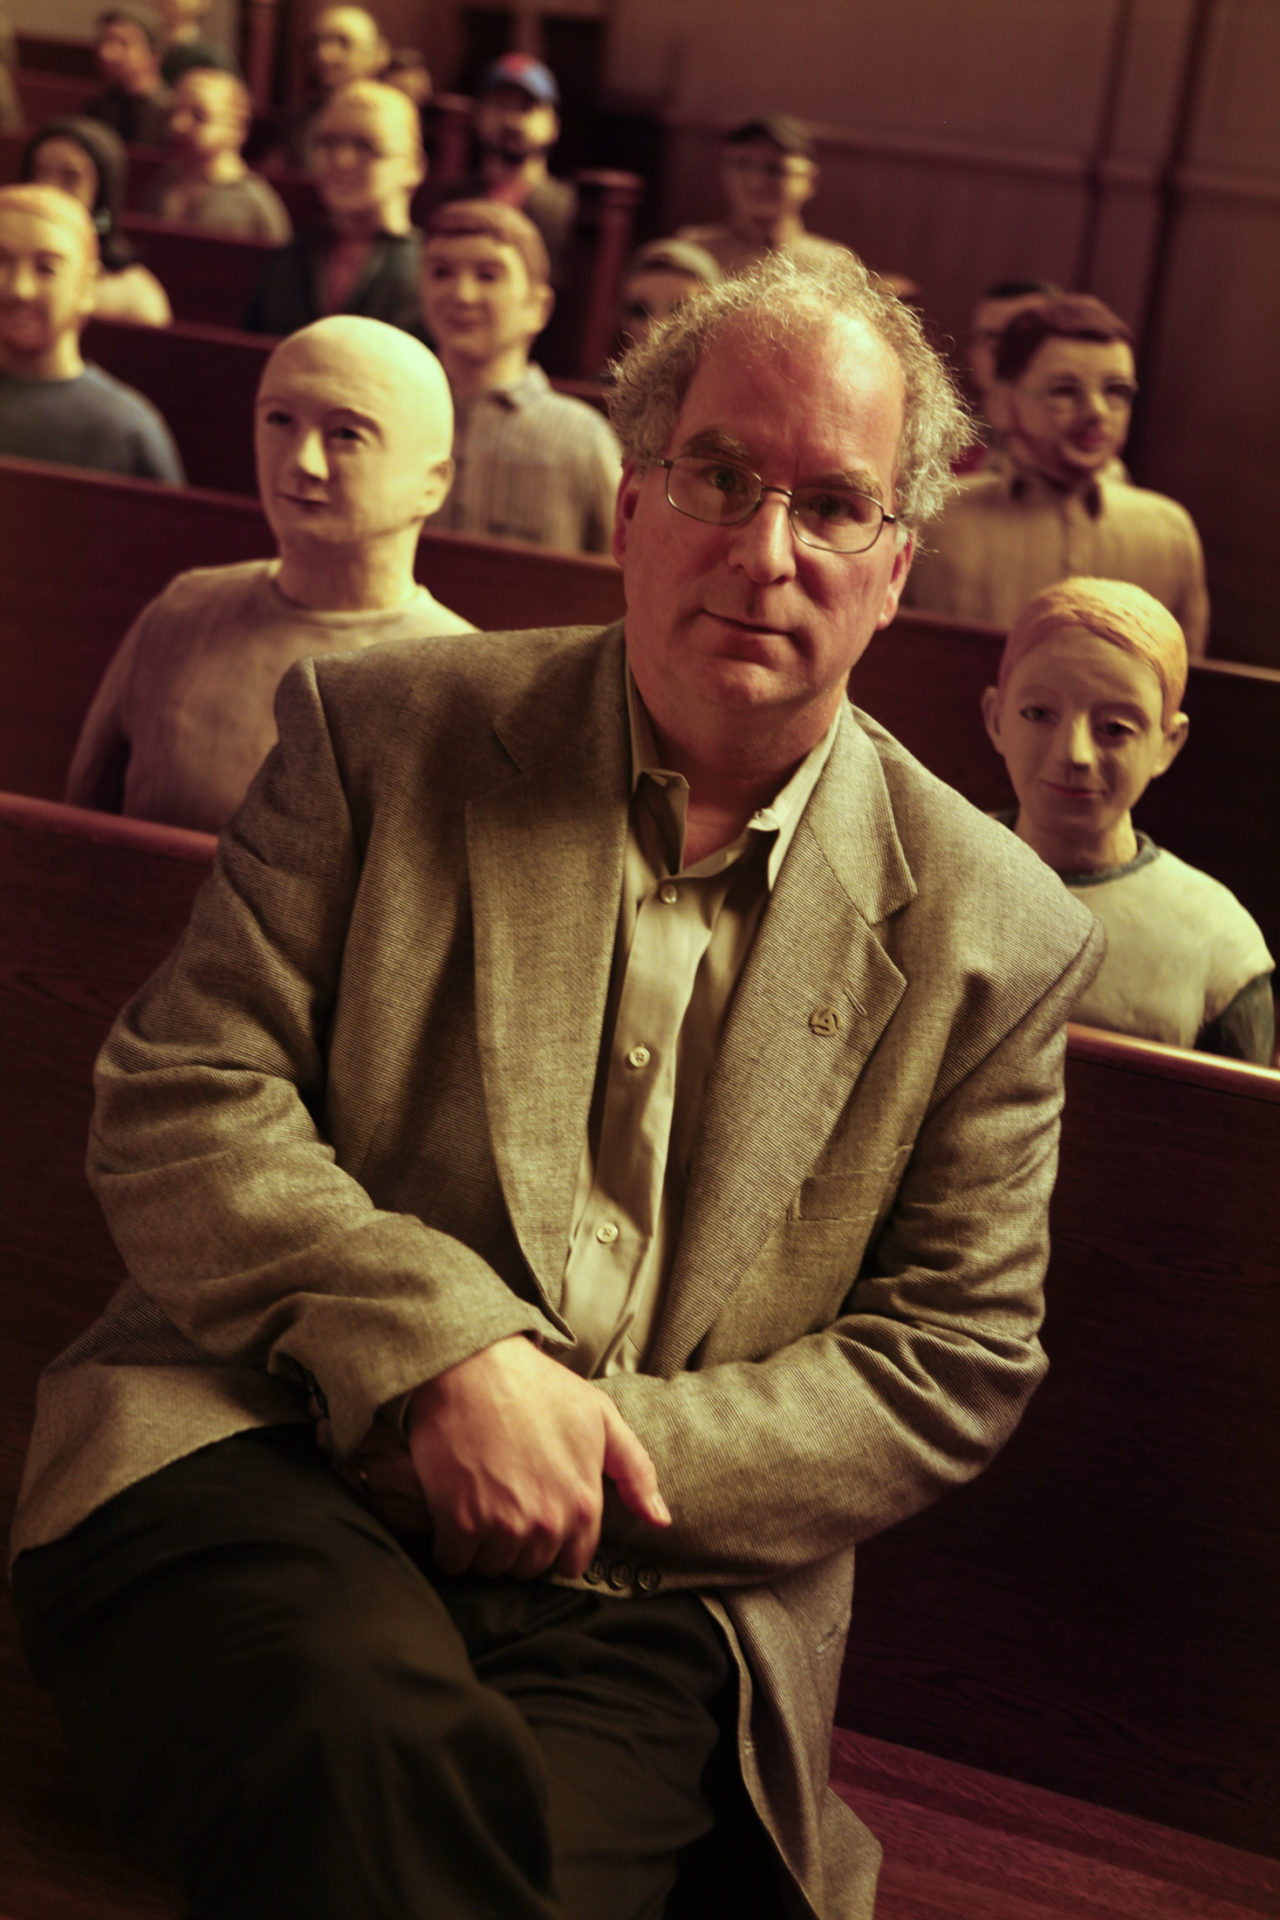 Brewster Kahle, sitting with some of the